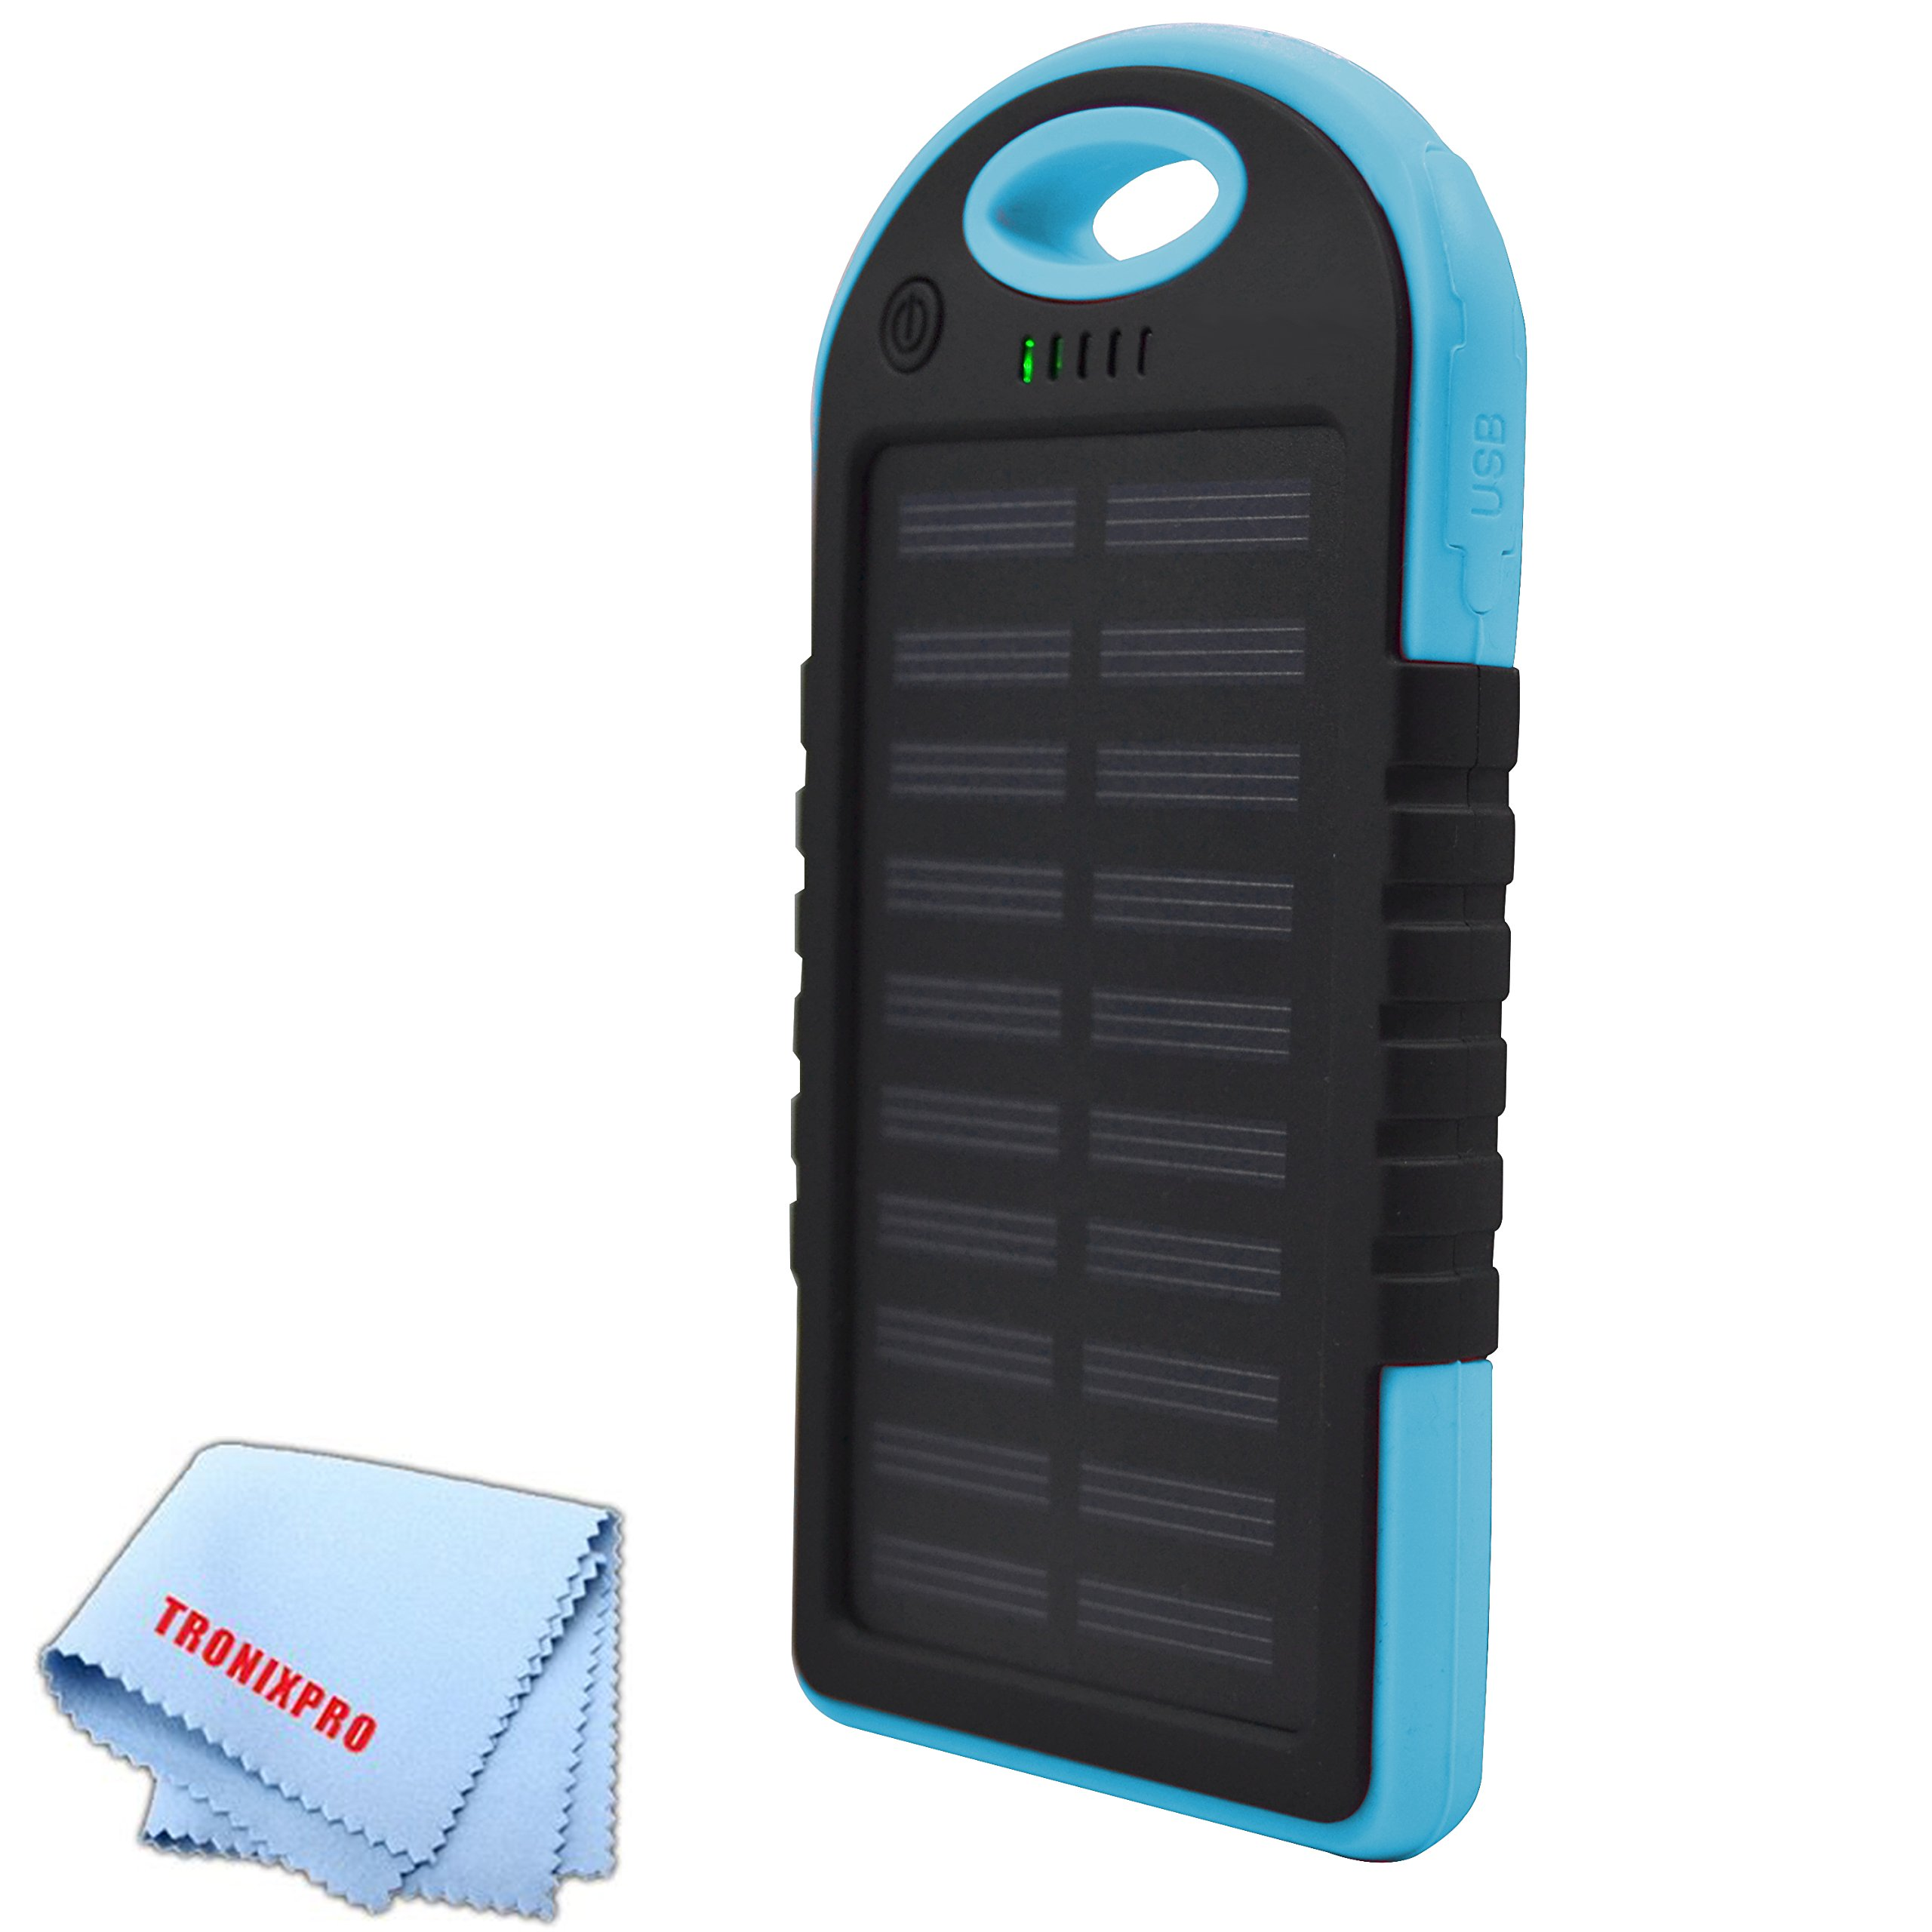 7000mAh Solar cell Water resistant Battery power bank and with dual USB output and Blacklight (Blue) + Tronixpro Microfiber Cloth